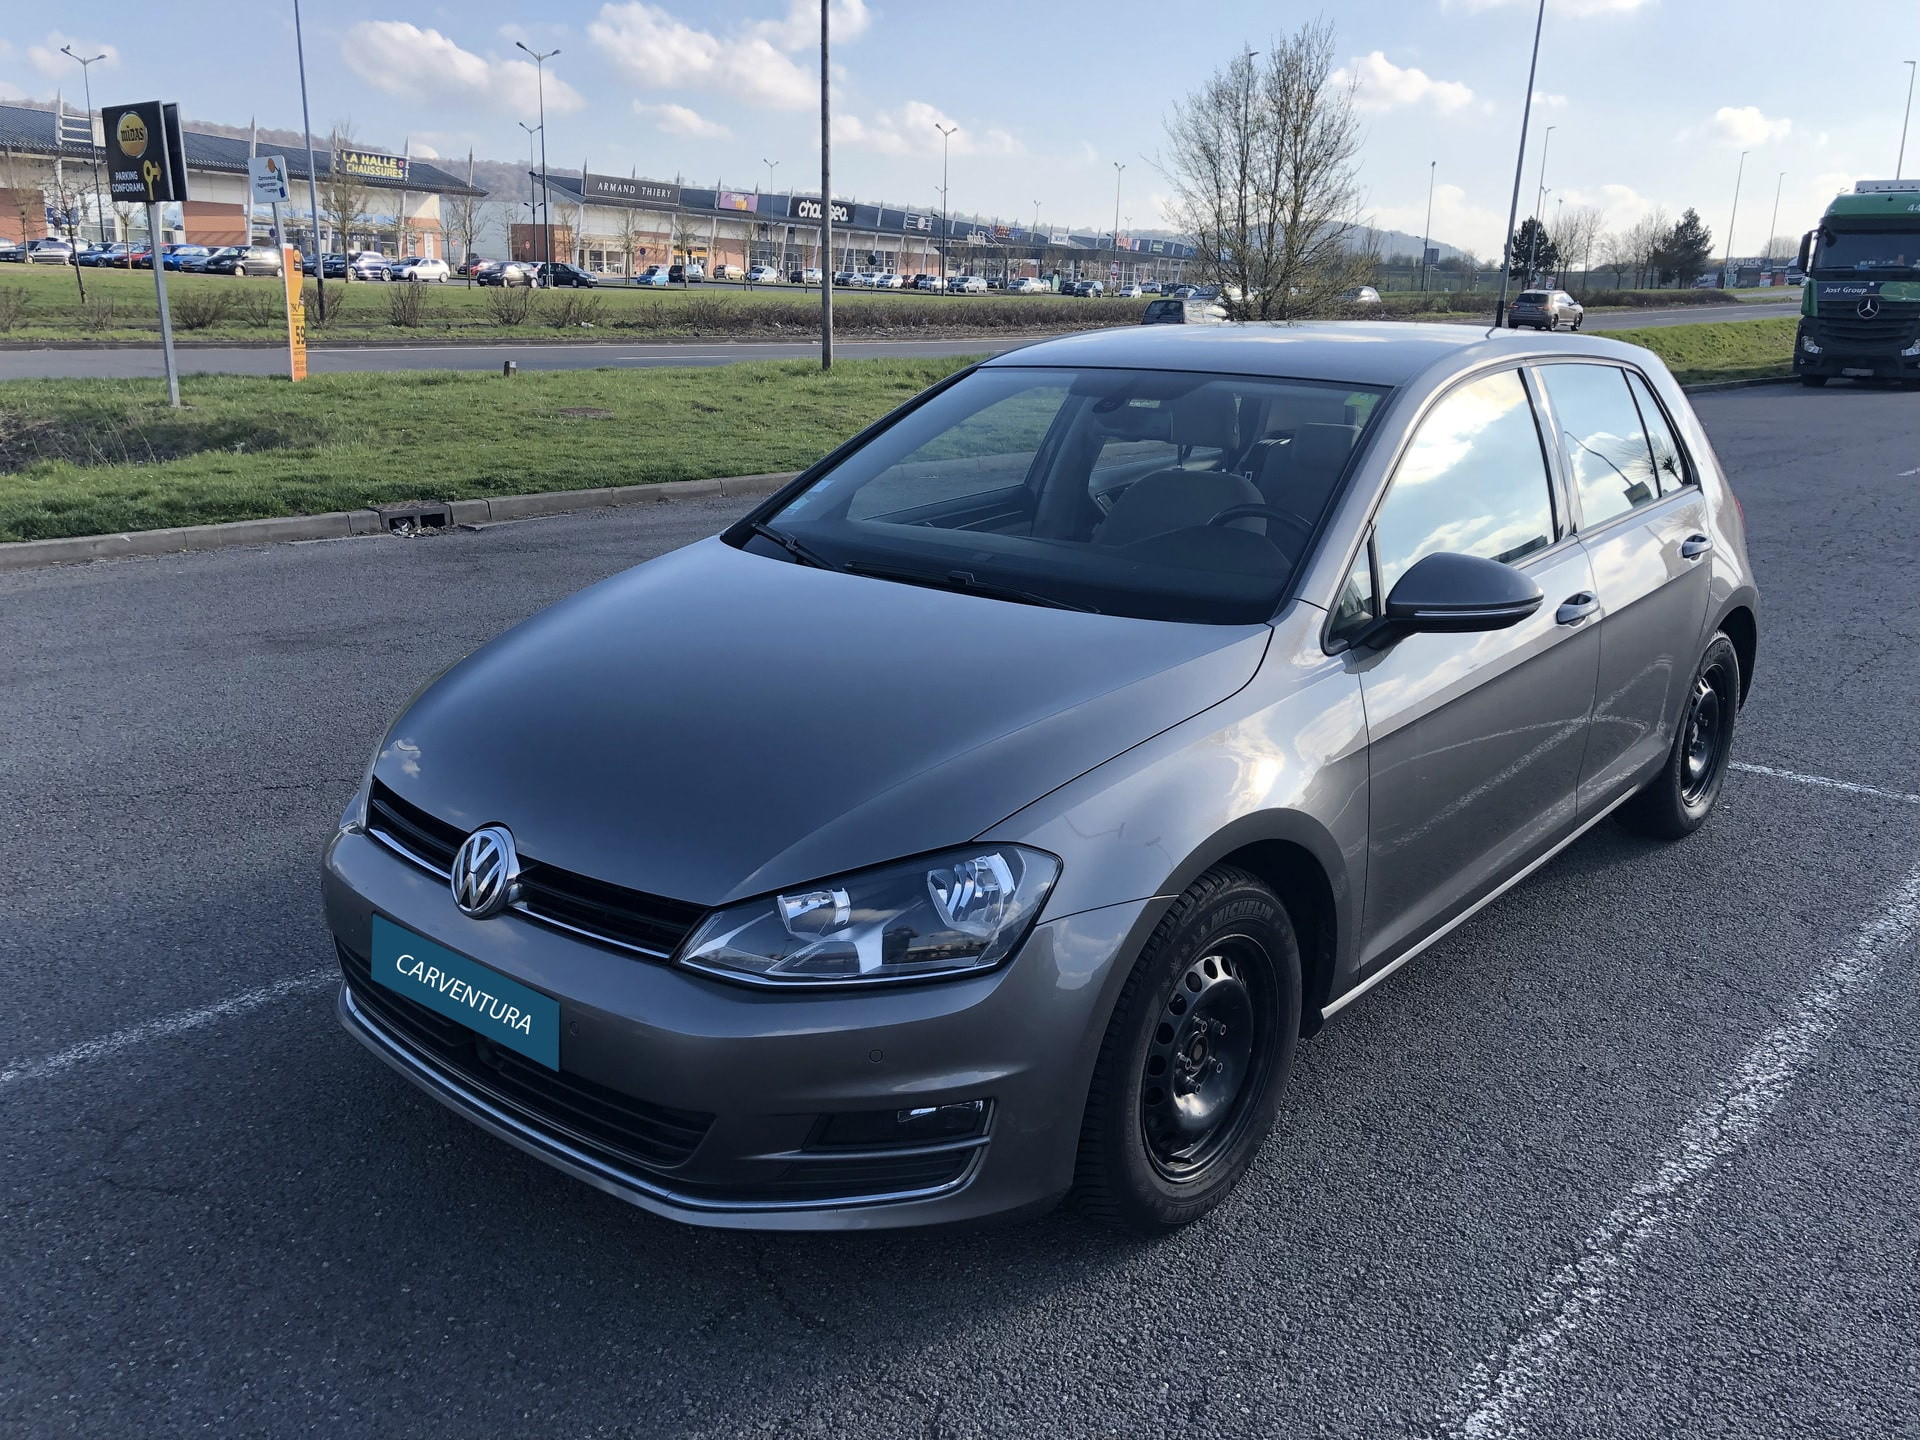 VOLKSWAGEN GOLF 2.0 TDI 150 BLUEMOTION CARAT - Carverntura